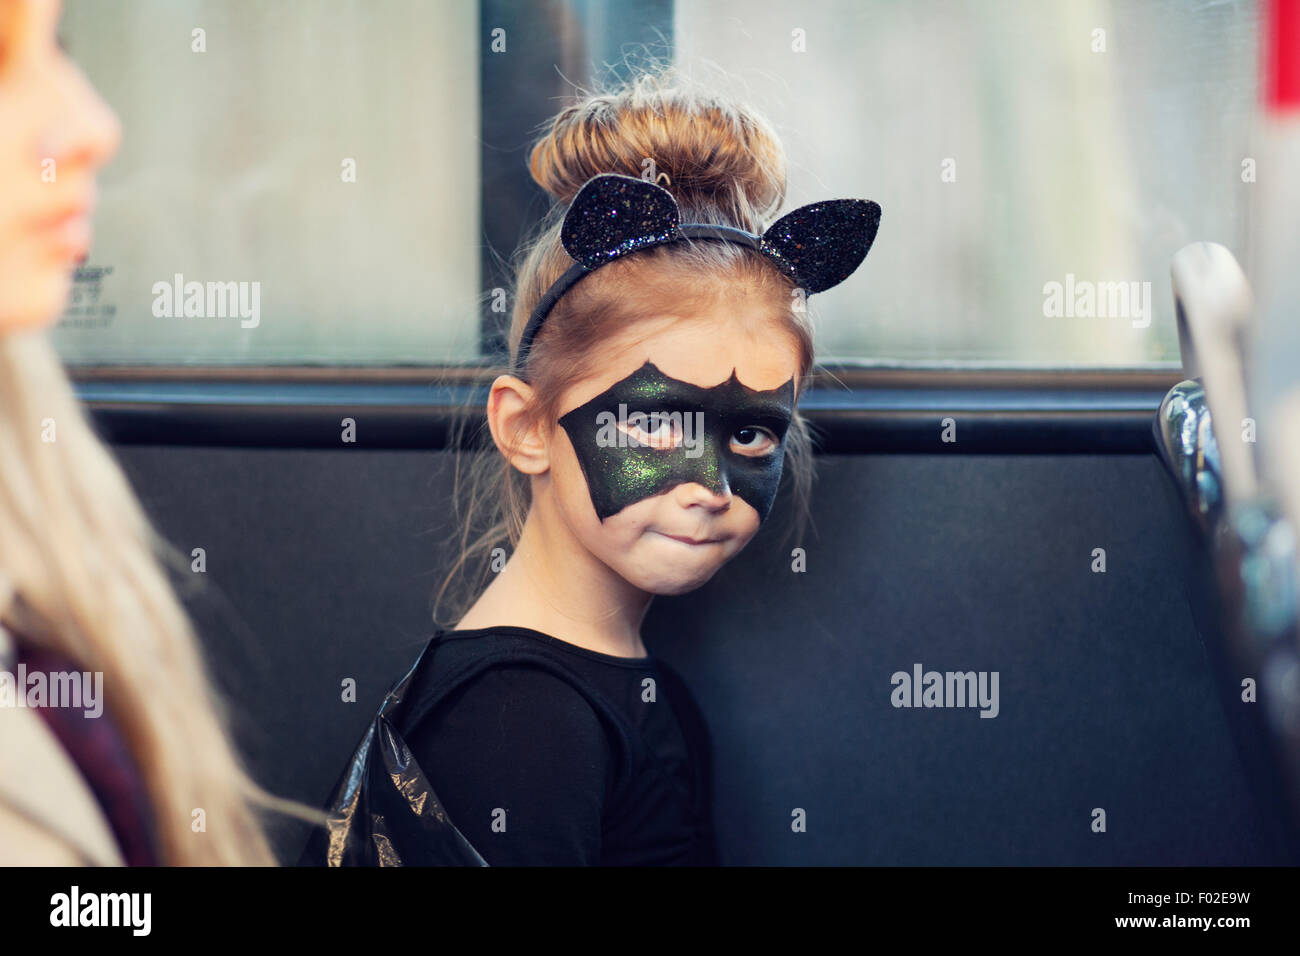 Girl in a bat costume for Halloween - Stock Image